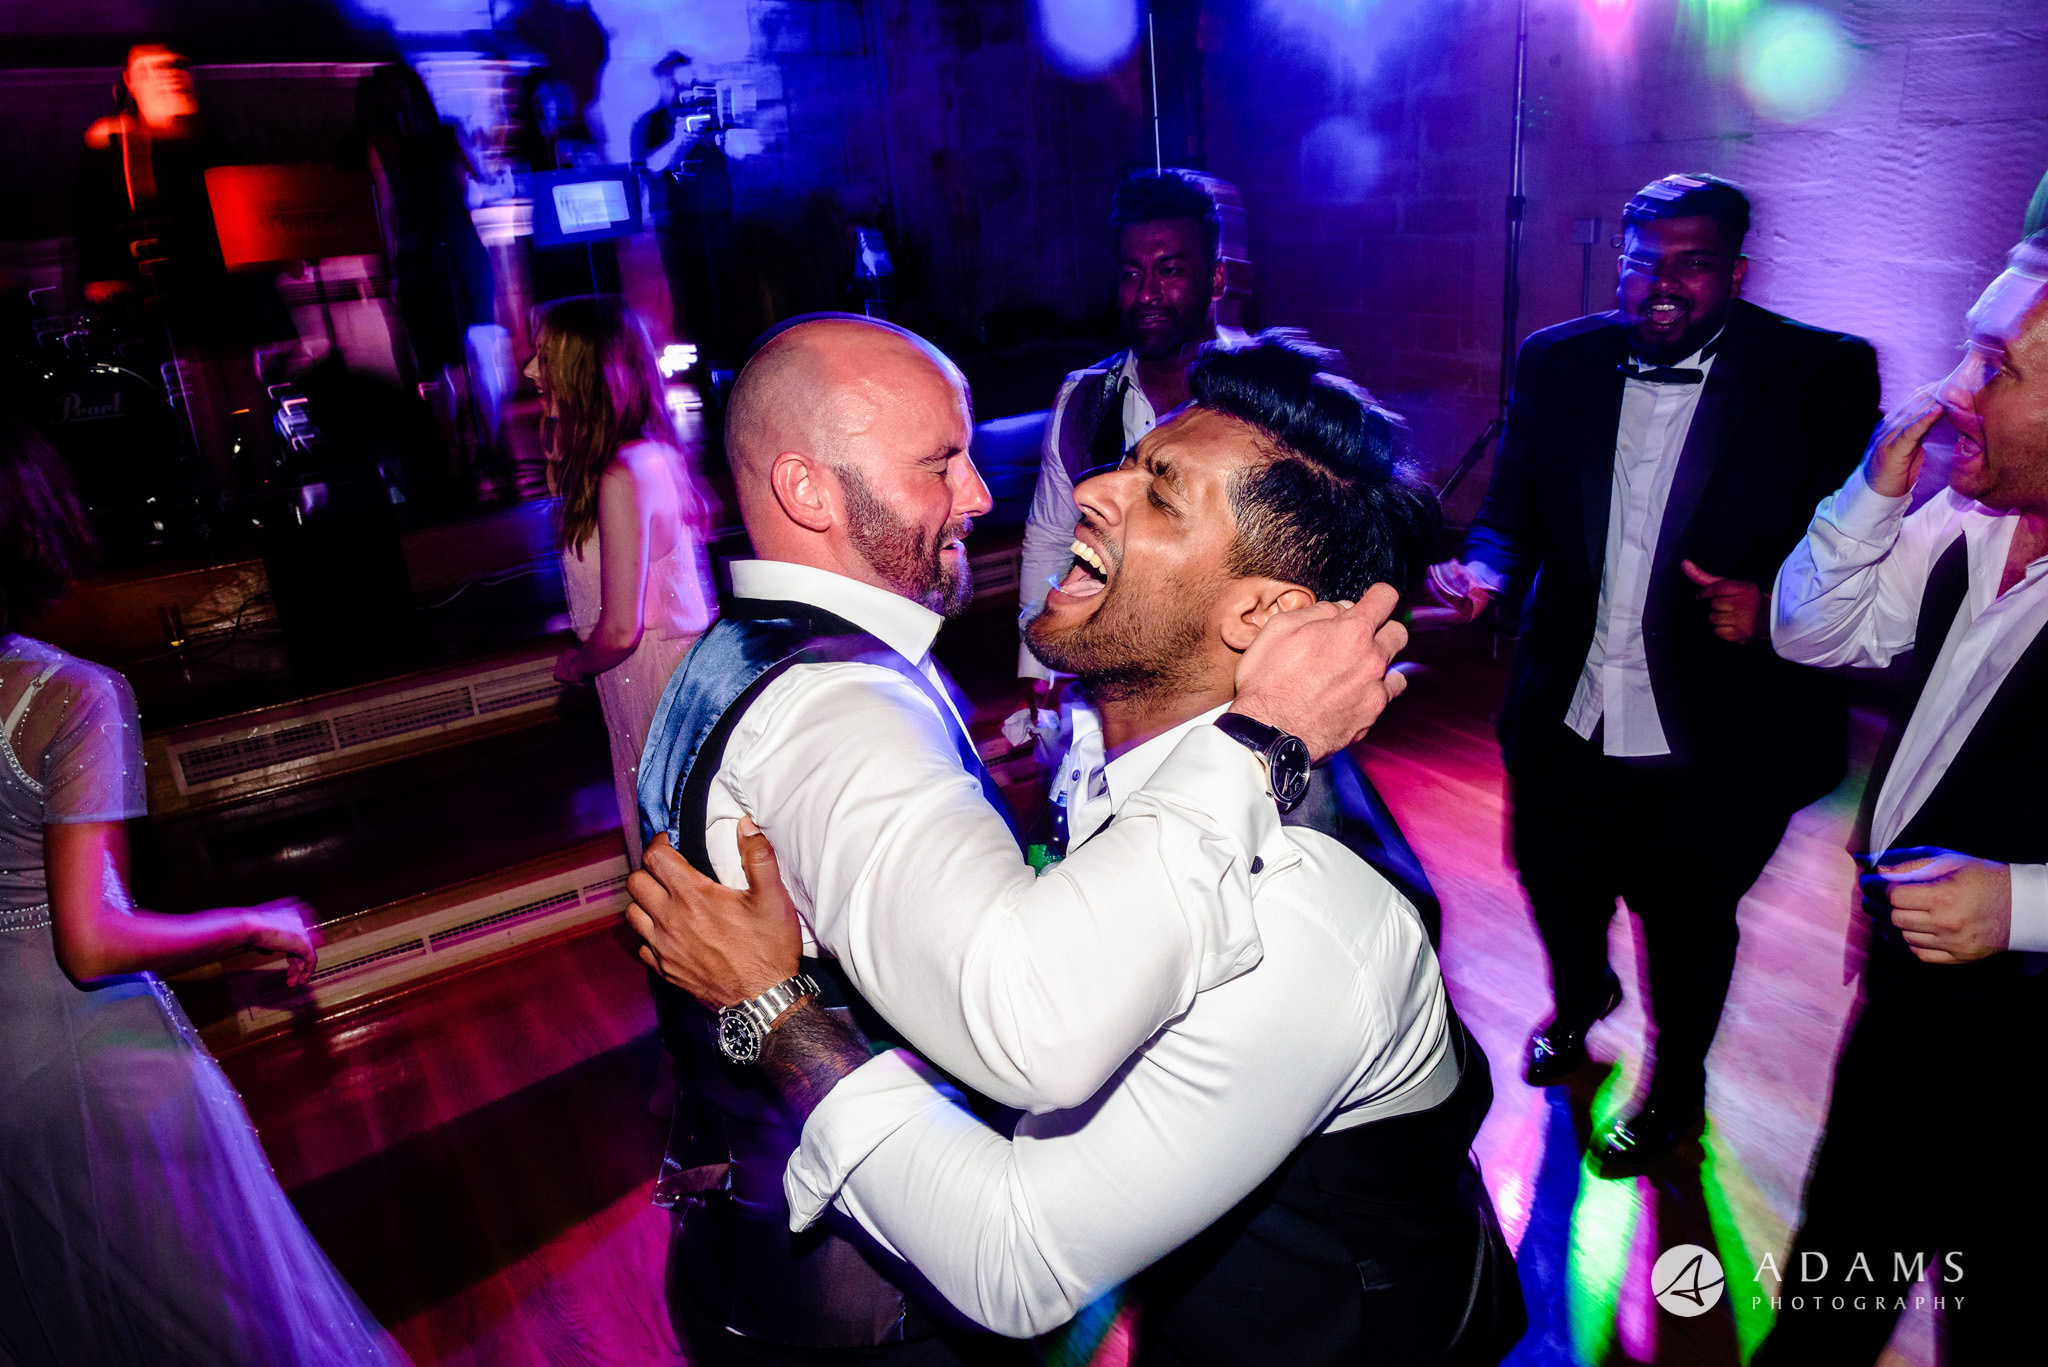 st donats castle wedding grooms brother is hugging his friend